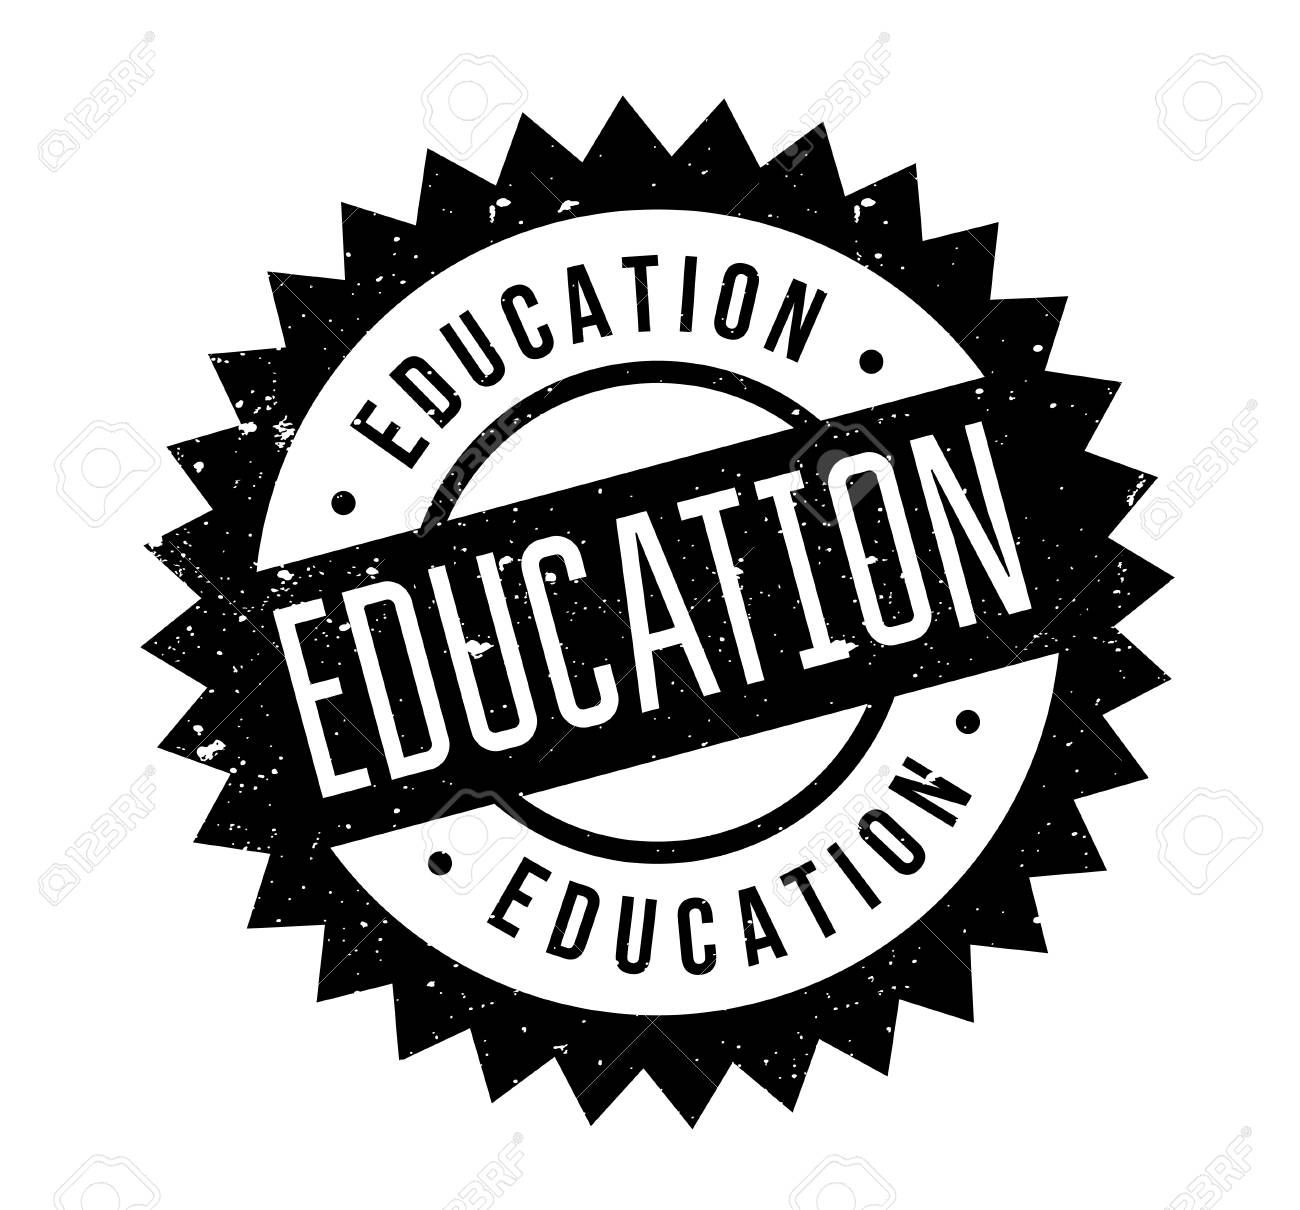 Education rubber stamp - 86685938